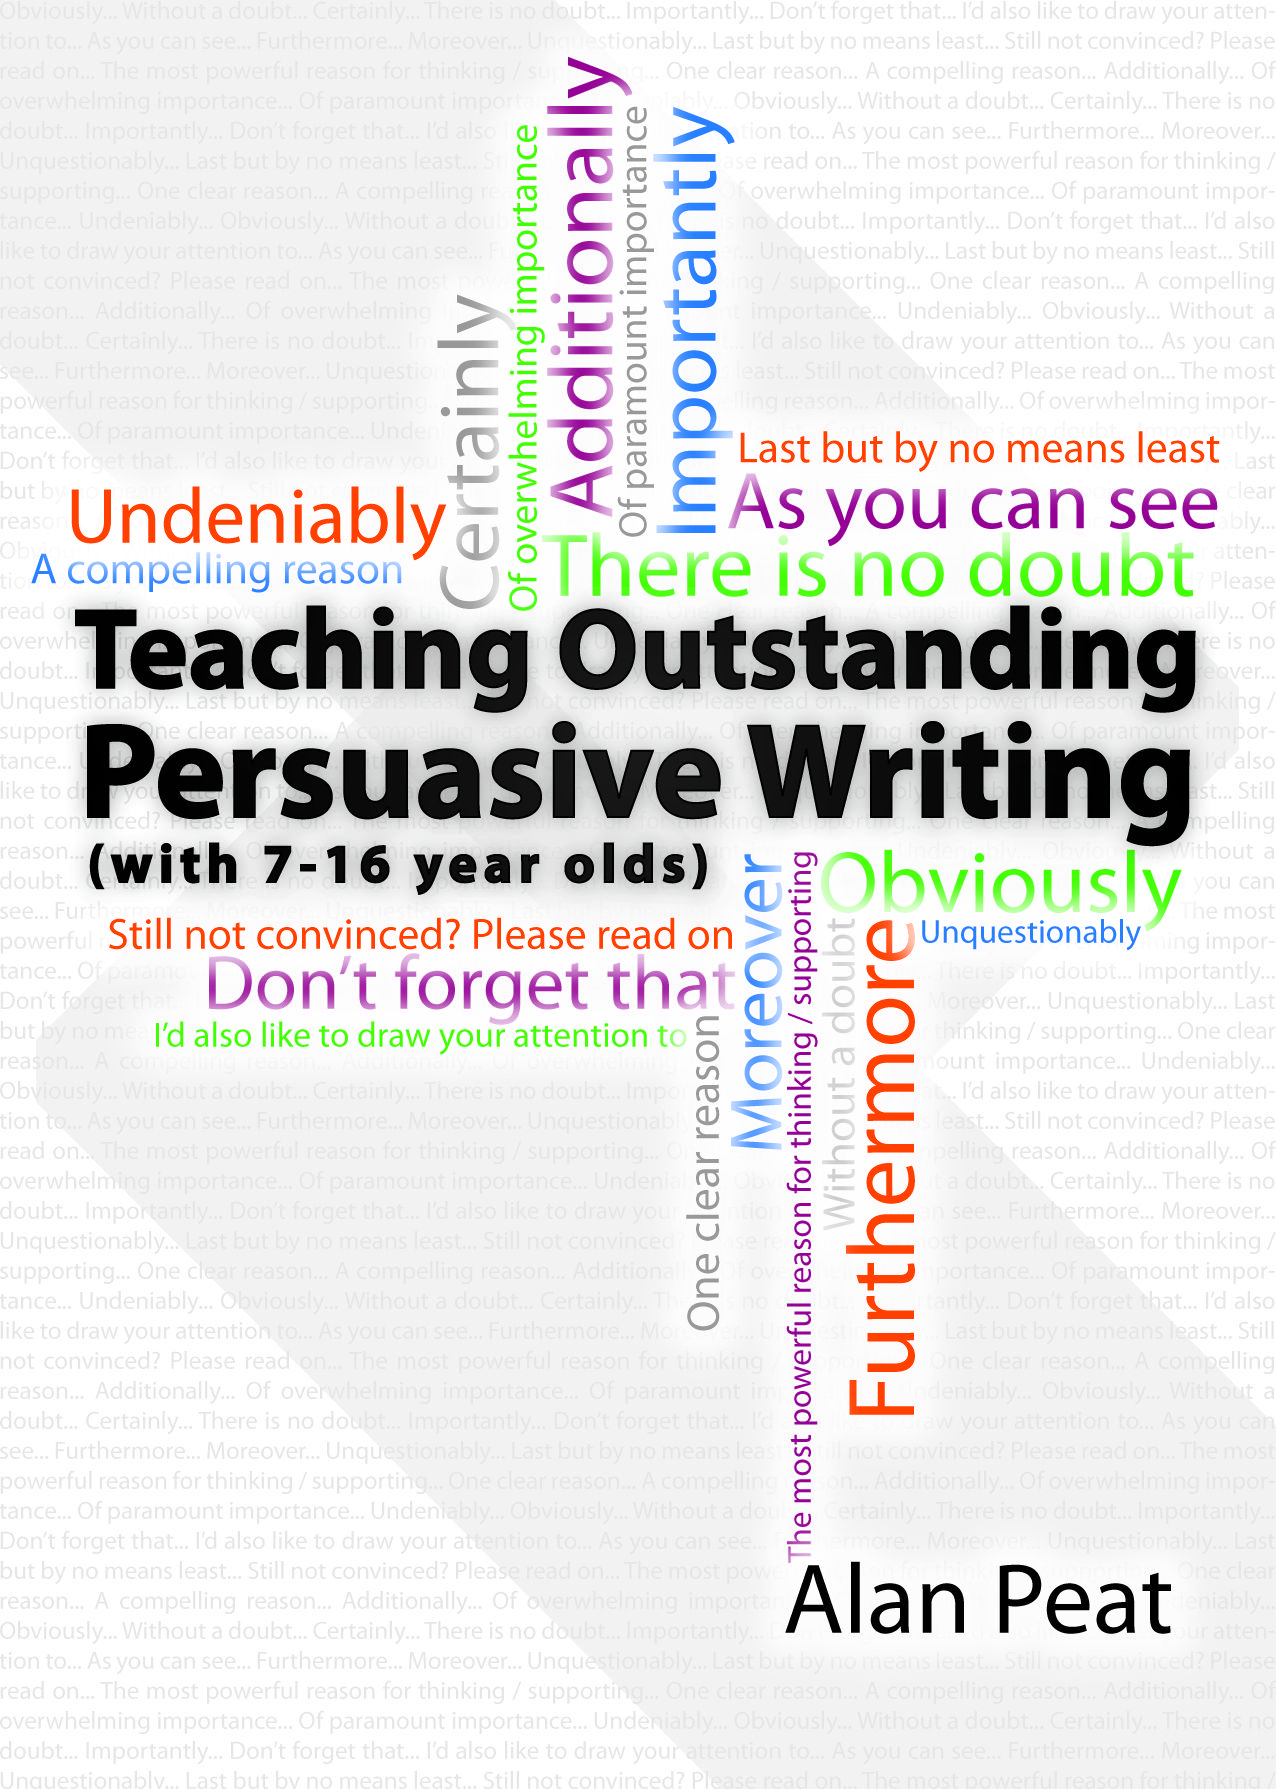 Teaching Outstanding Persuasive Writing By Alan Peat